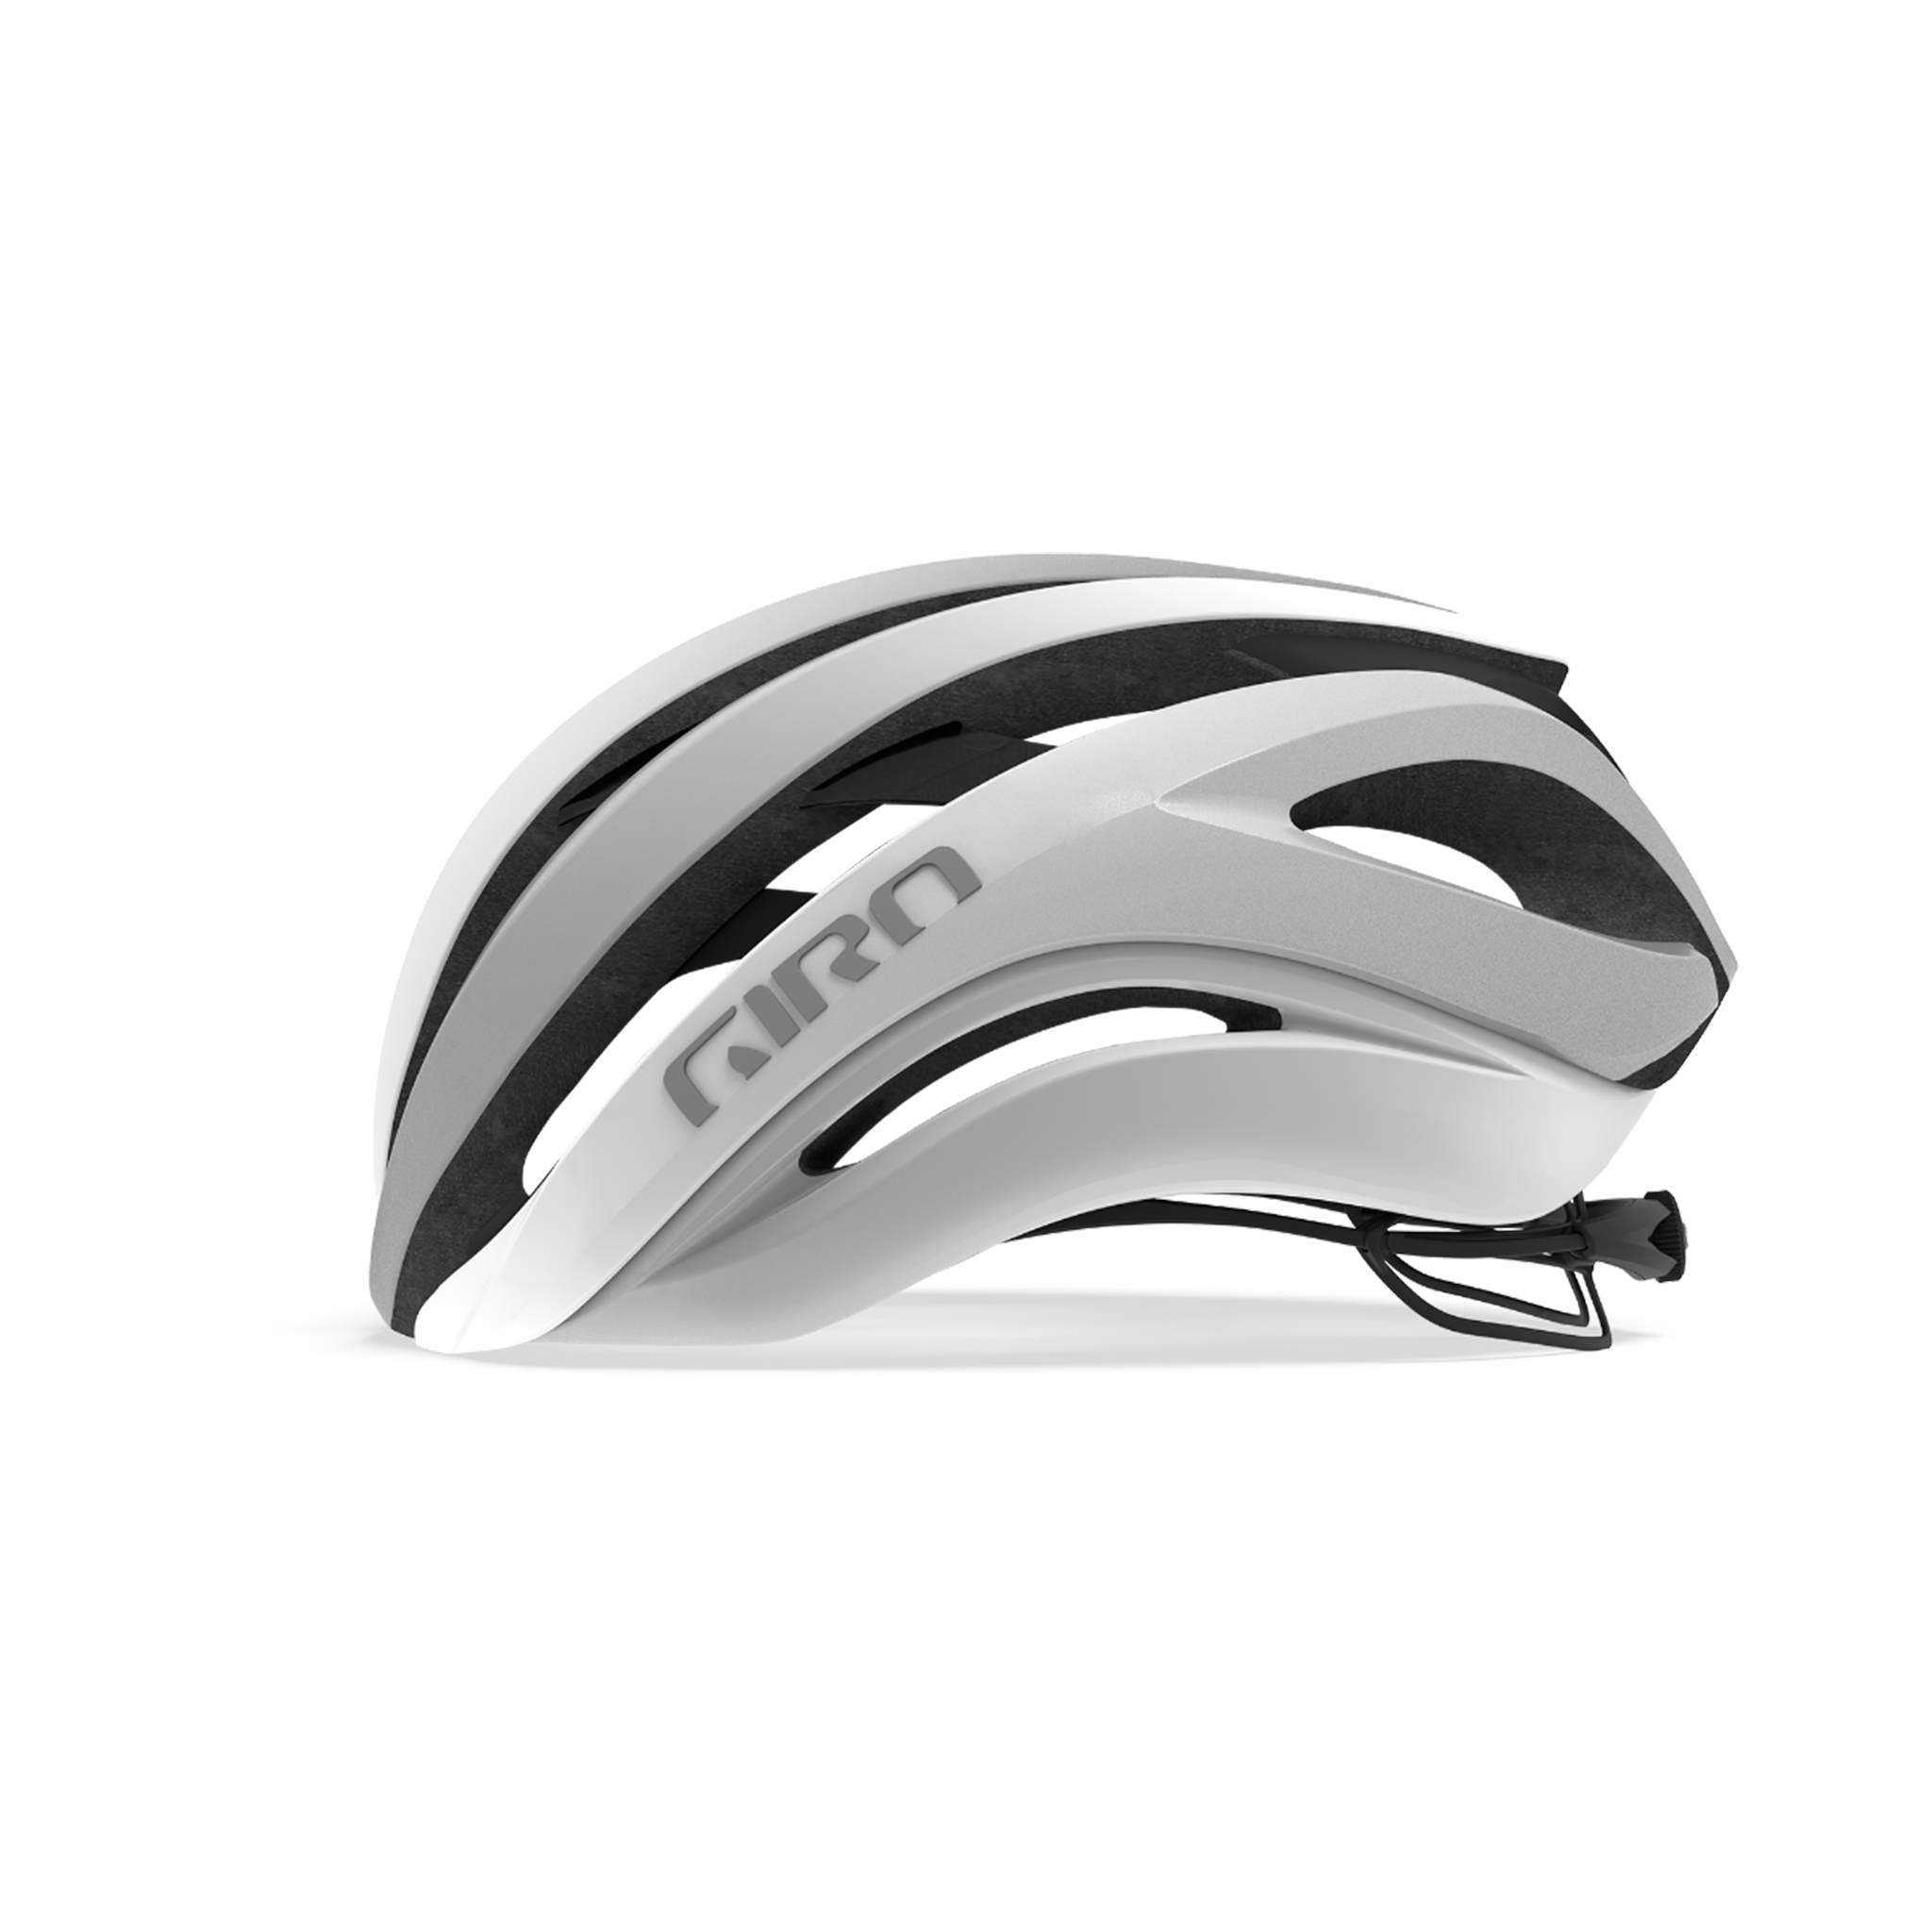 Giro Road Helmet  - Aether Mips - Multi Colours